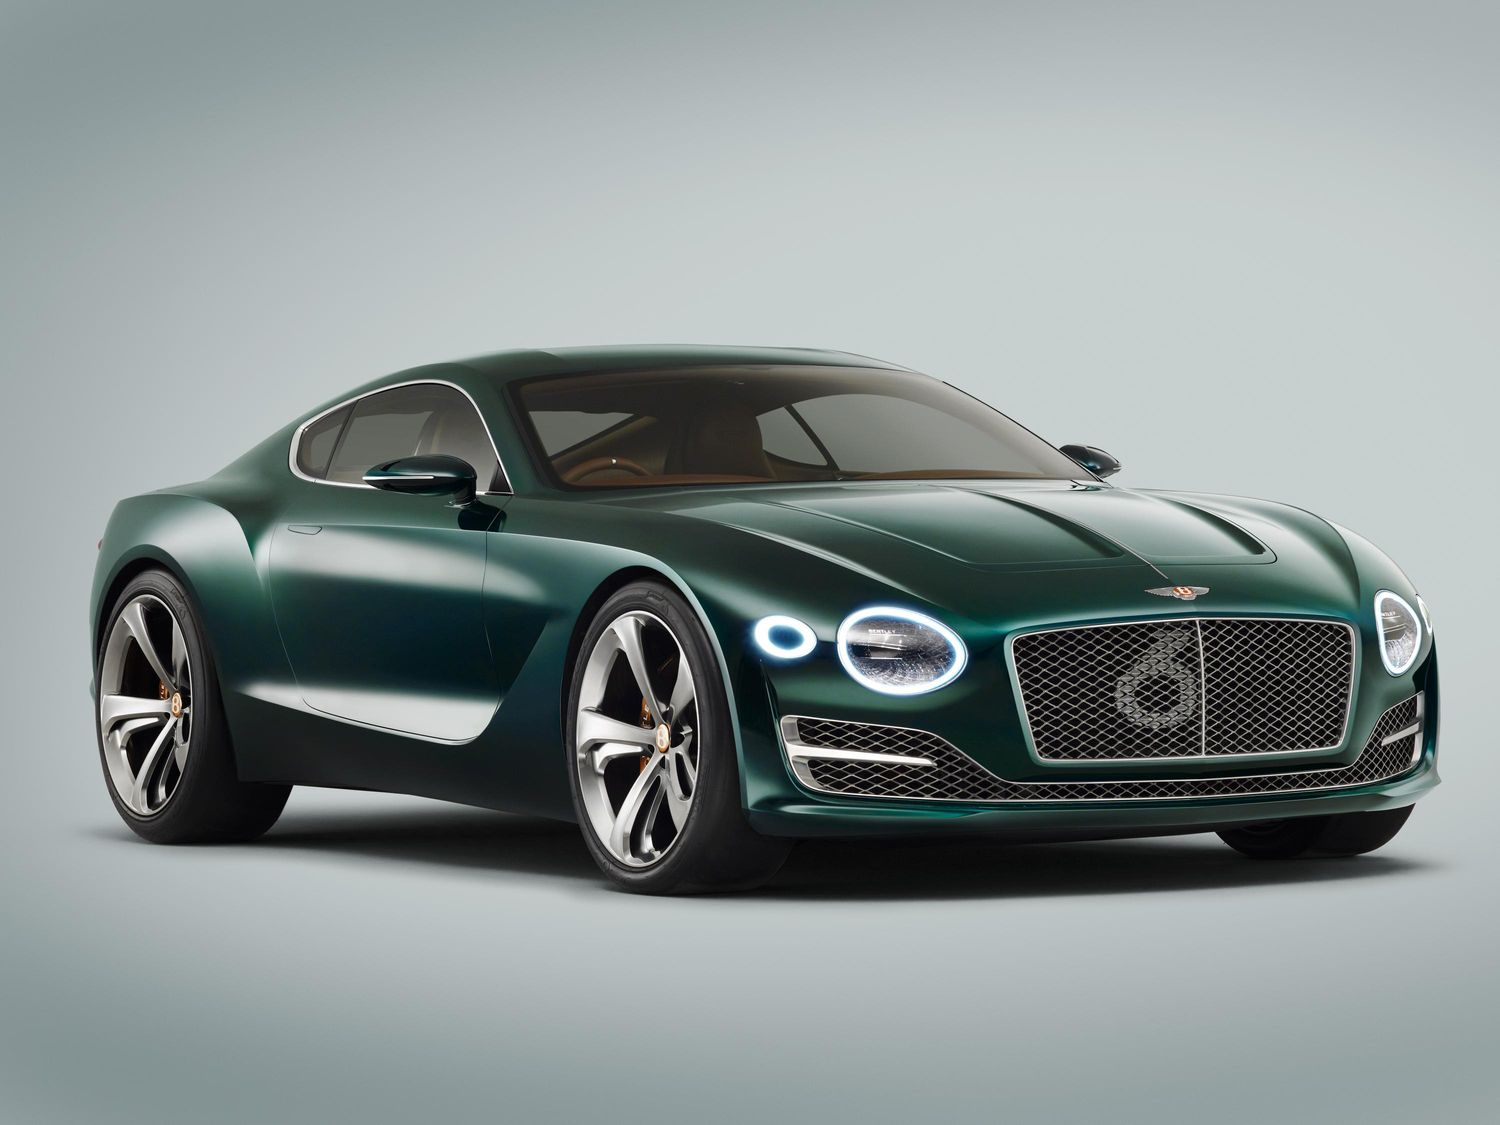 Bentley CEO Says Battery Technology Not Advanced Enough for Luxury EV